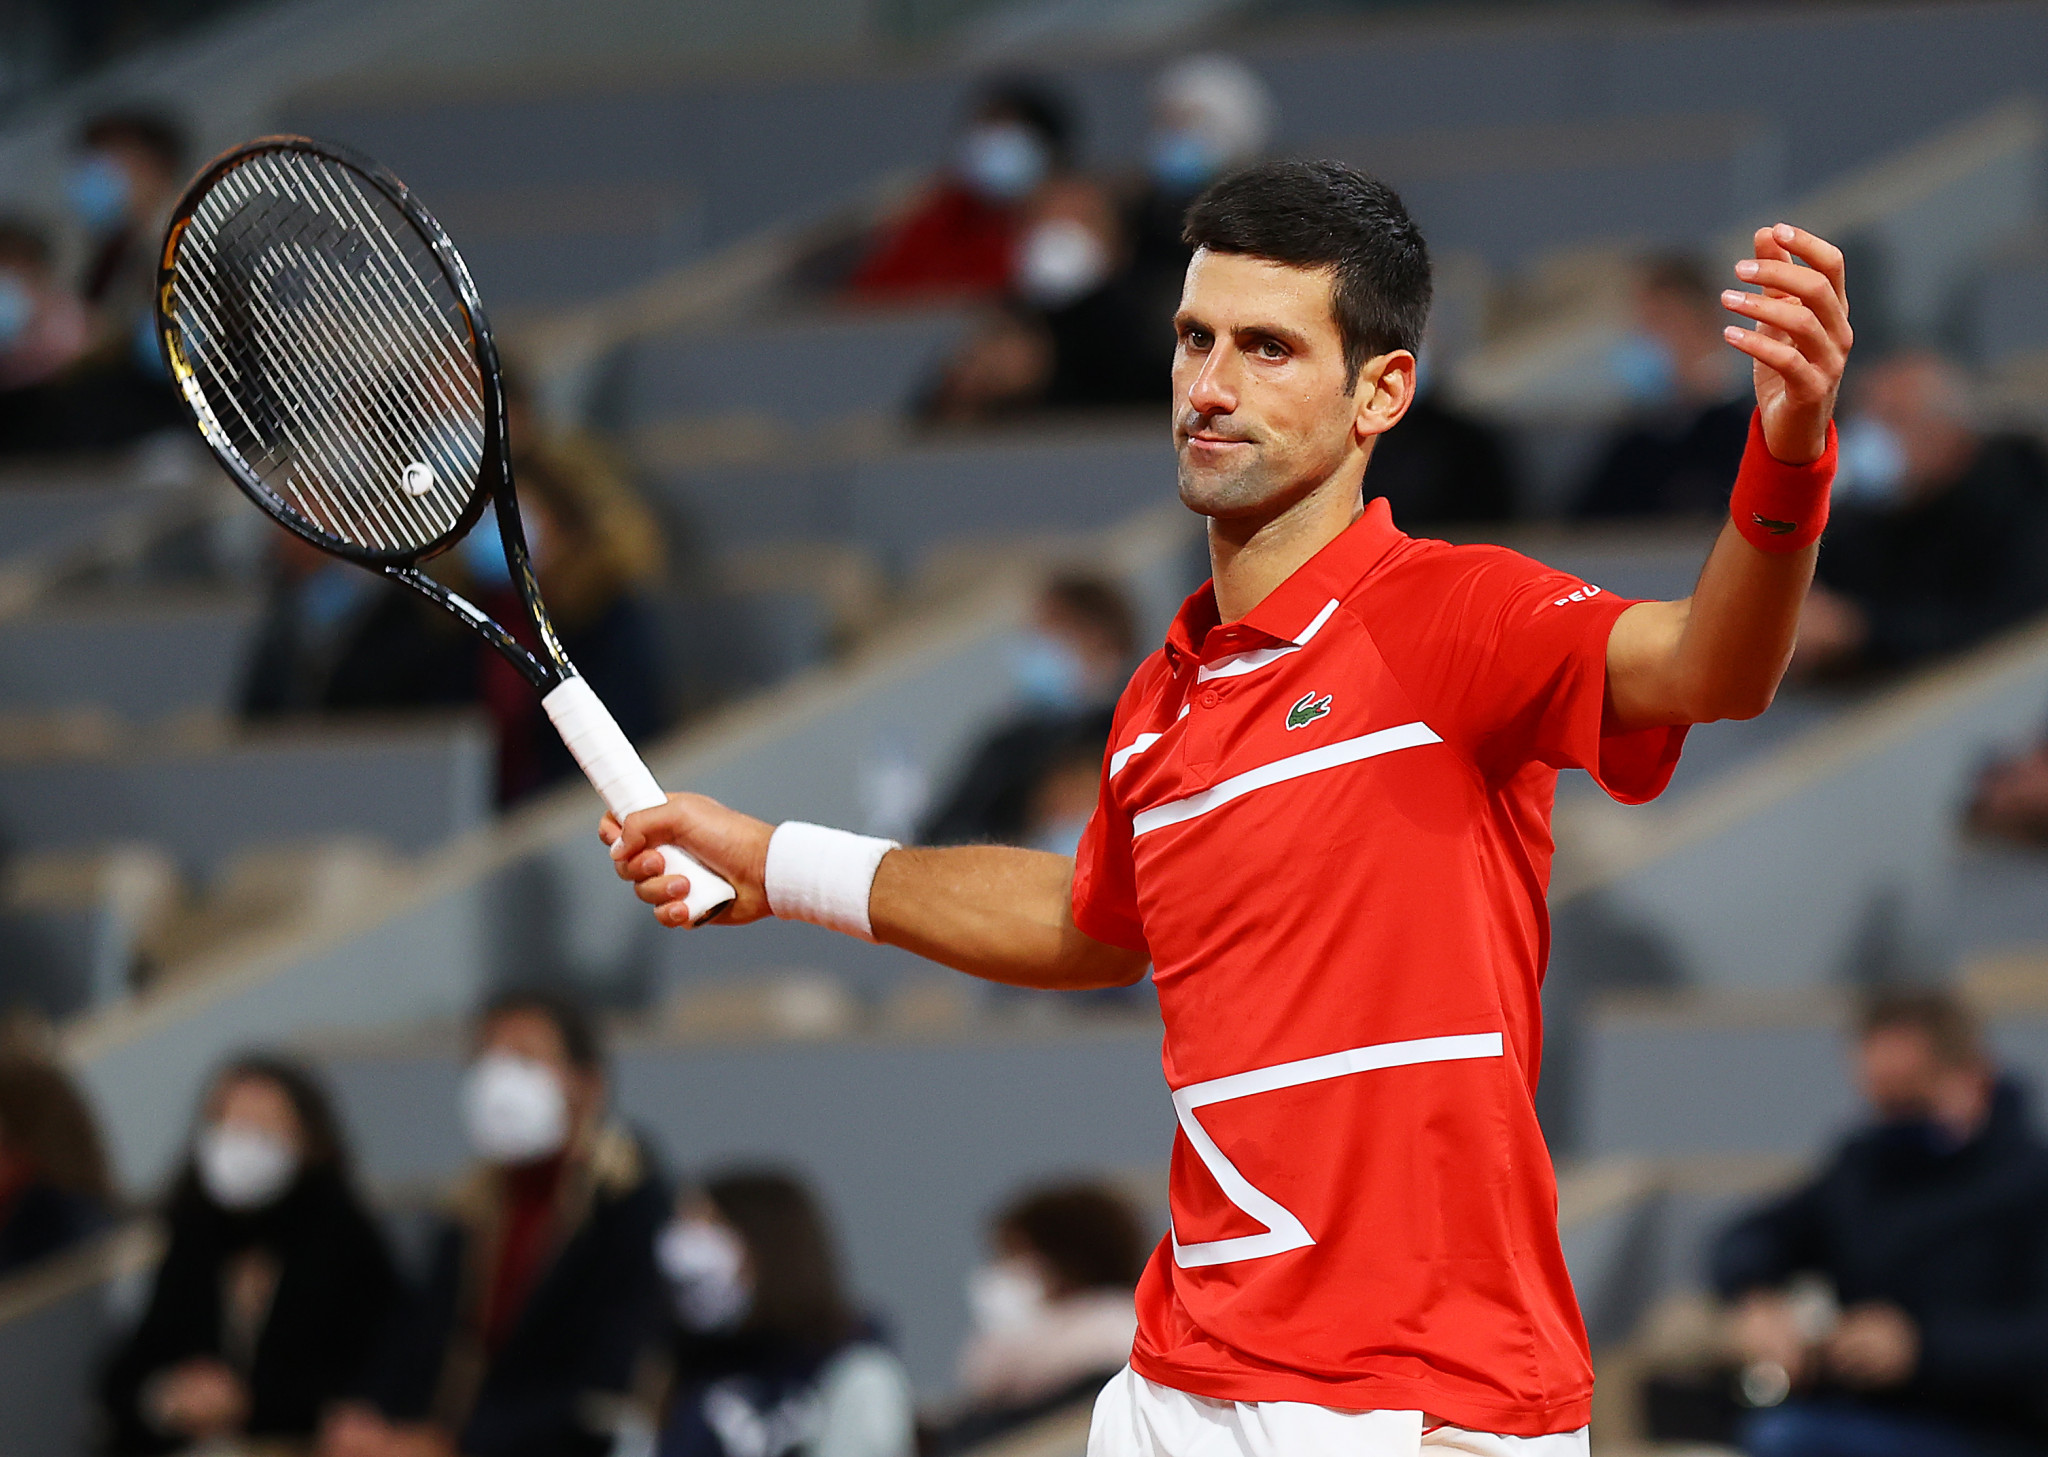 Djokovic had a day to forget as he struggled to thwart an in-form Nadal in Paris to lose a competitive match for the first time in 2020 ©Getty Images